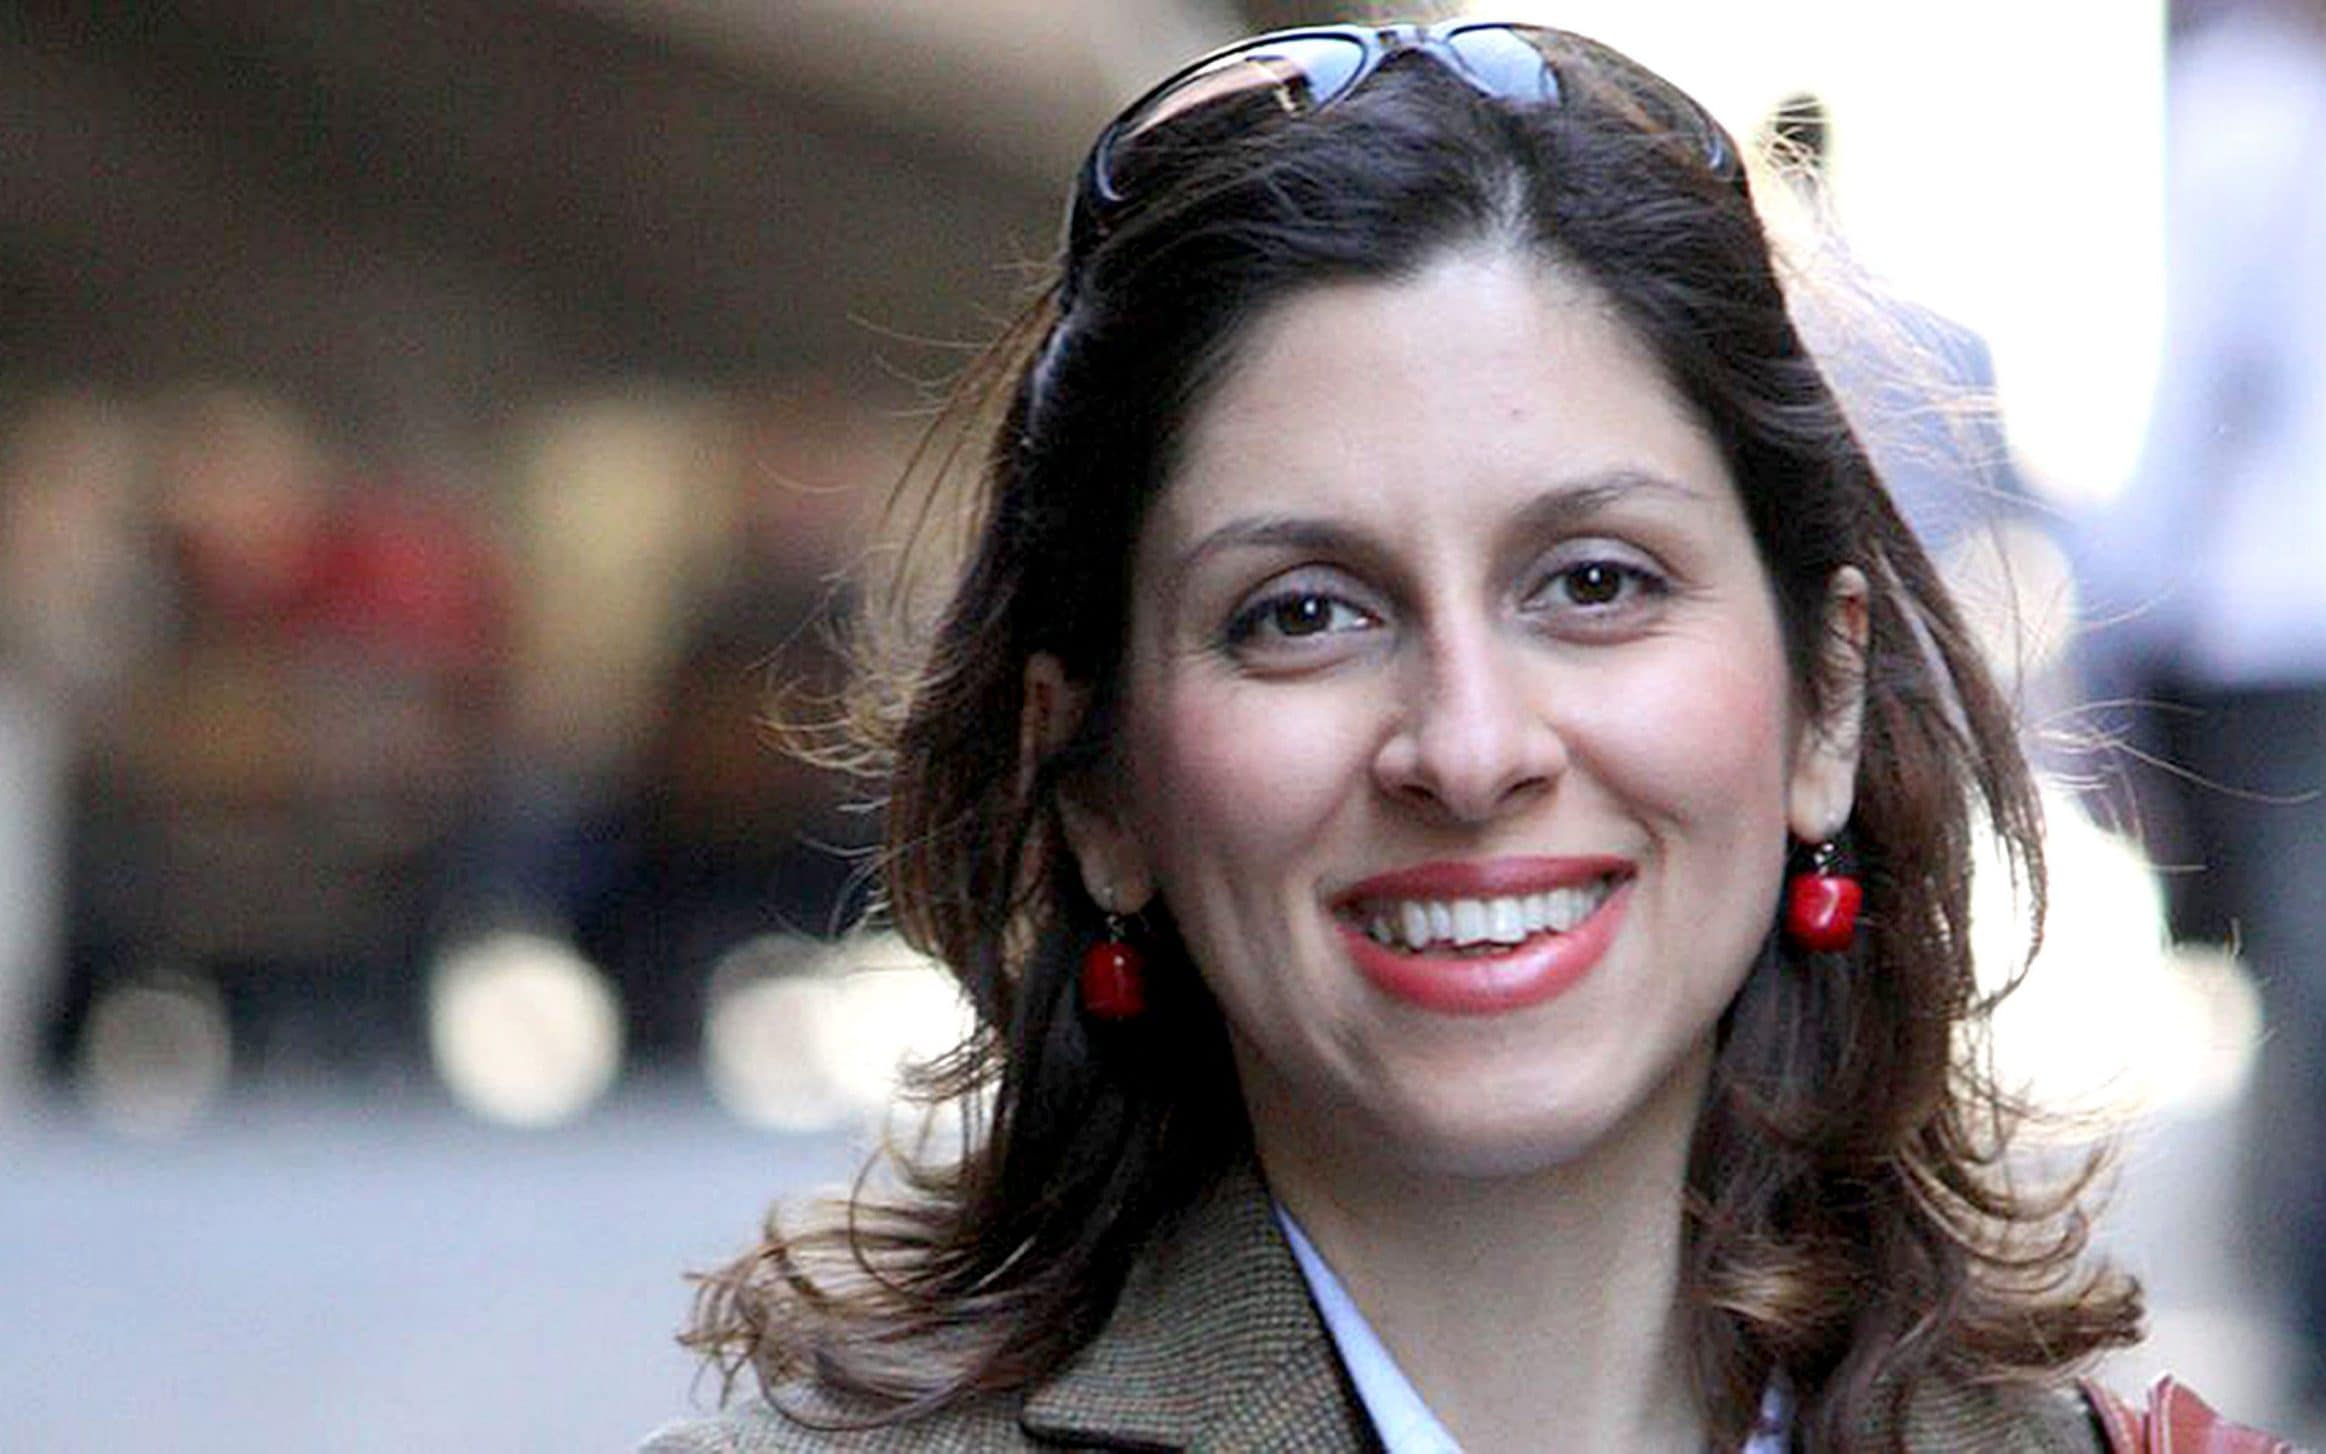 Nazanin Zaghari-Ratcliffe to go on hunger strike in solidarity with other detained dual nationals